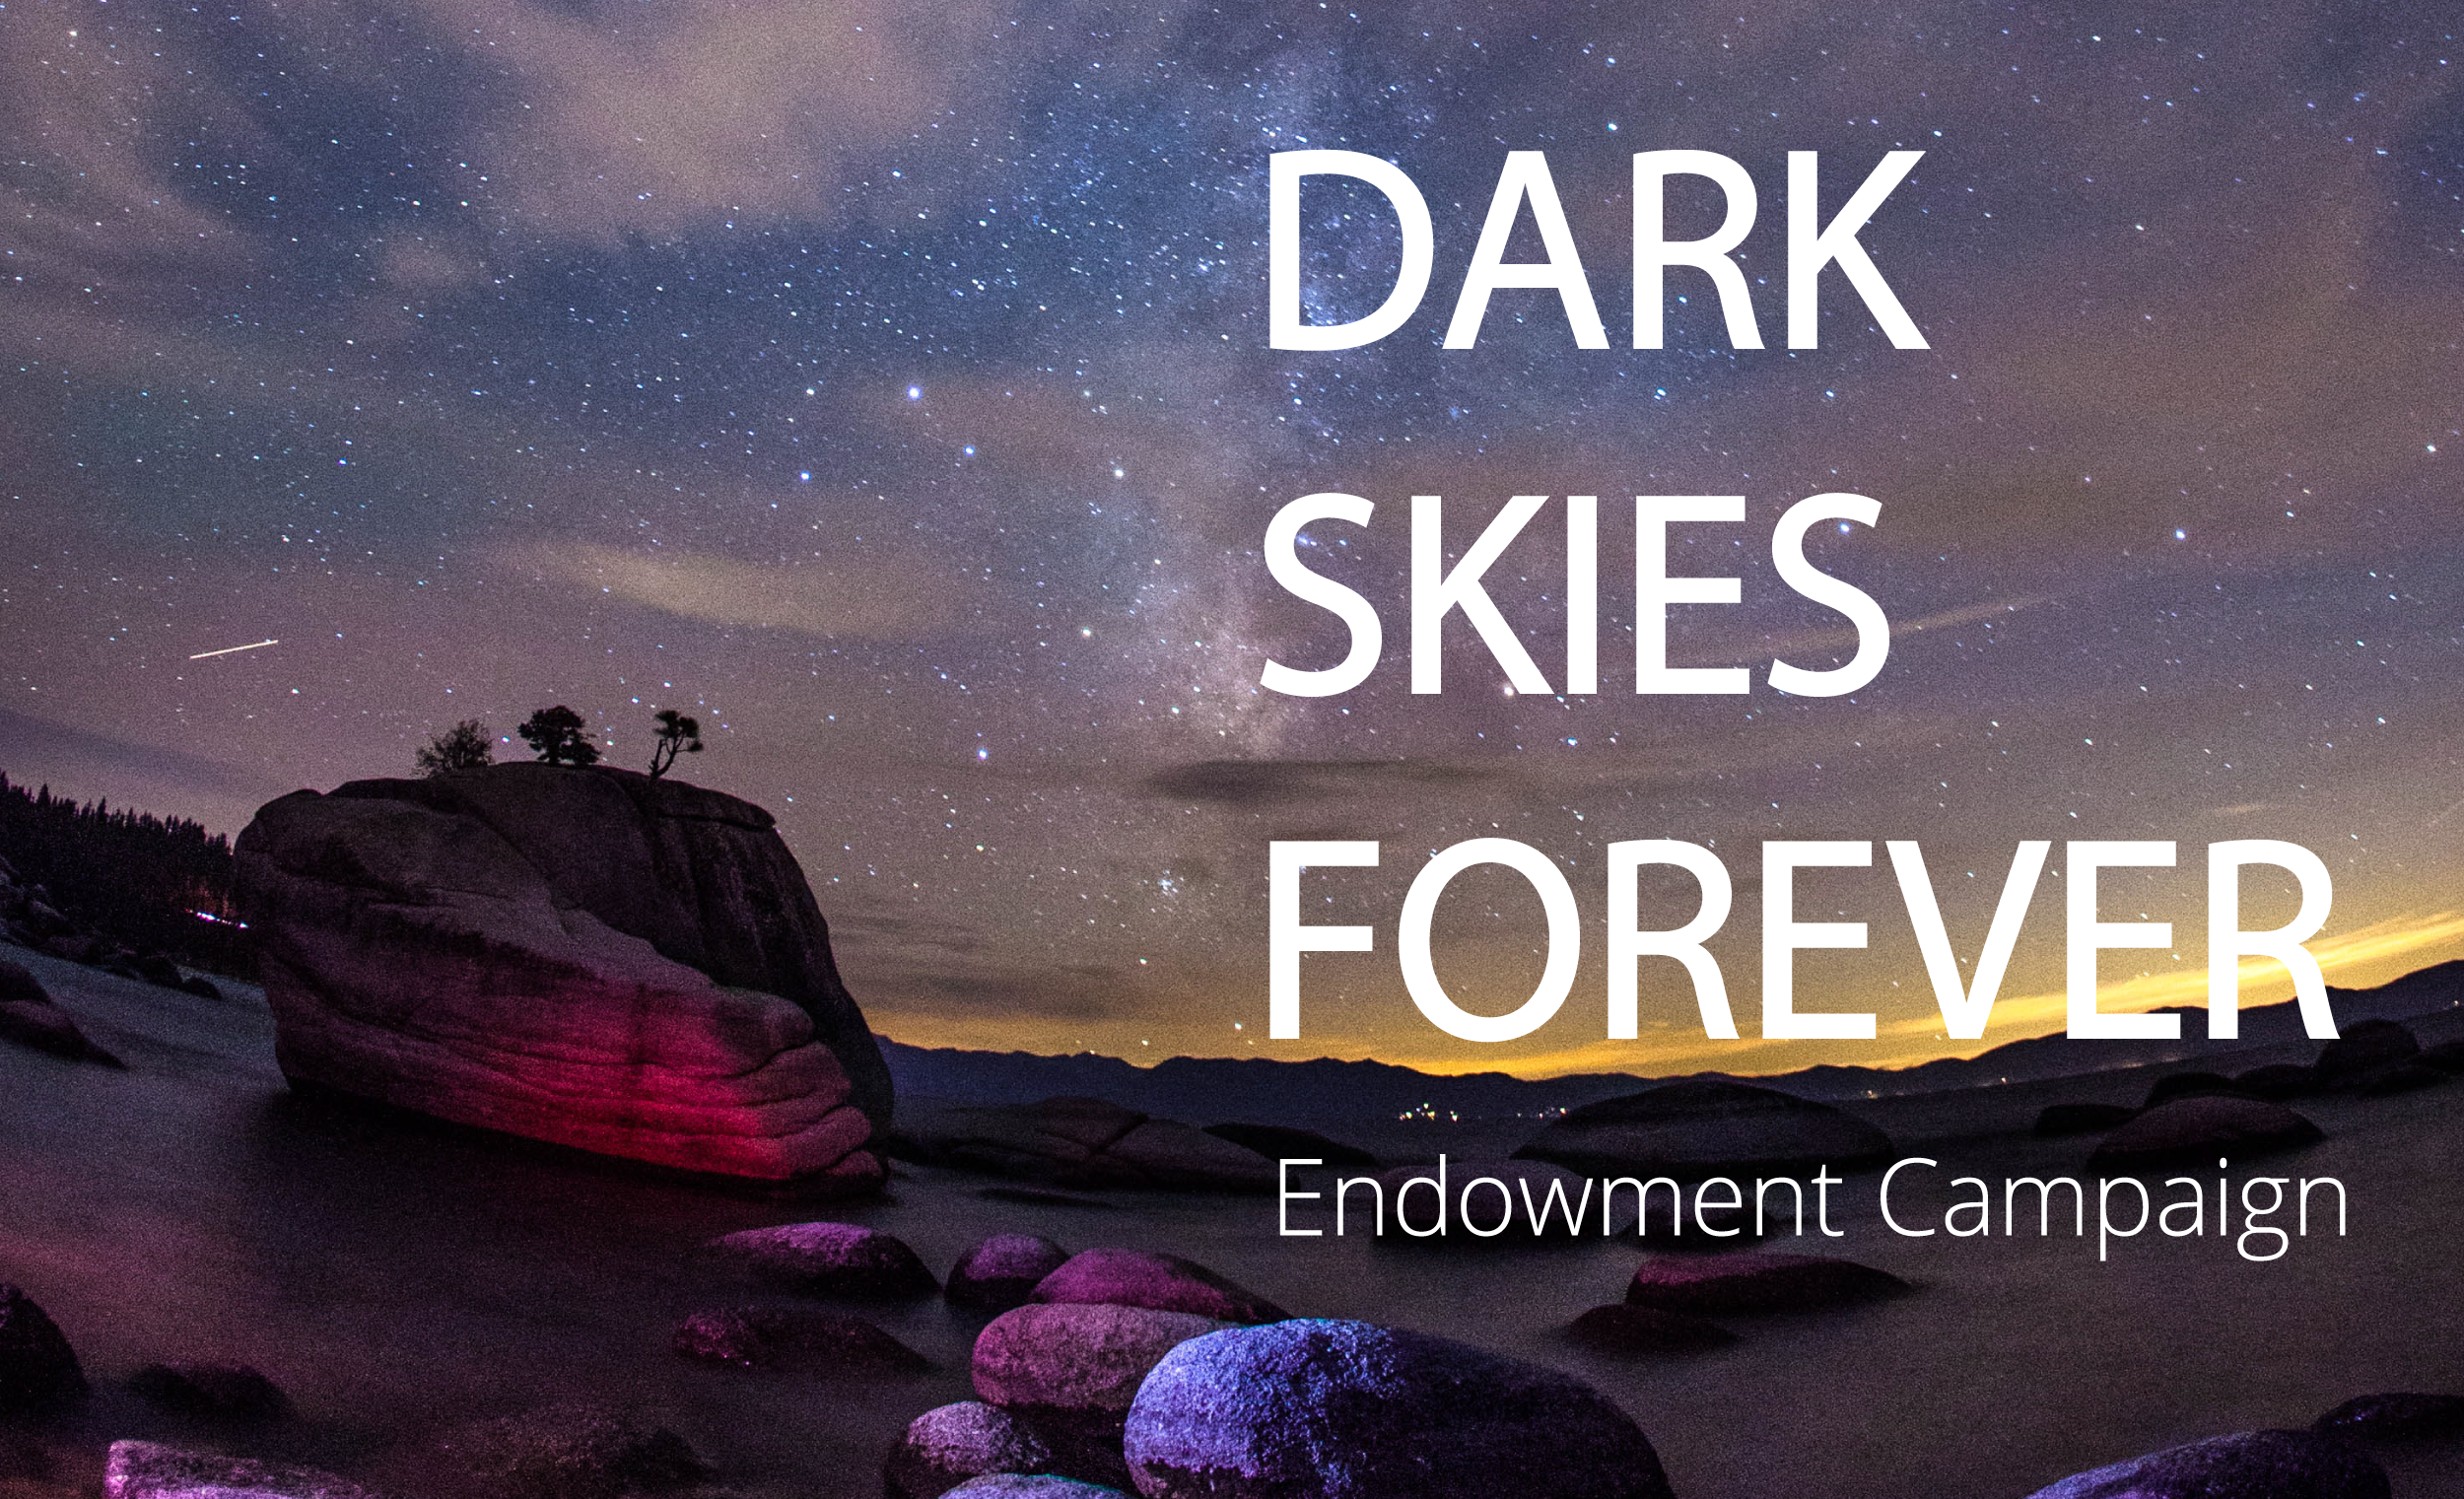 Dark Skies Forever Endowment Campaign Image